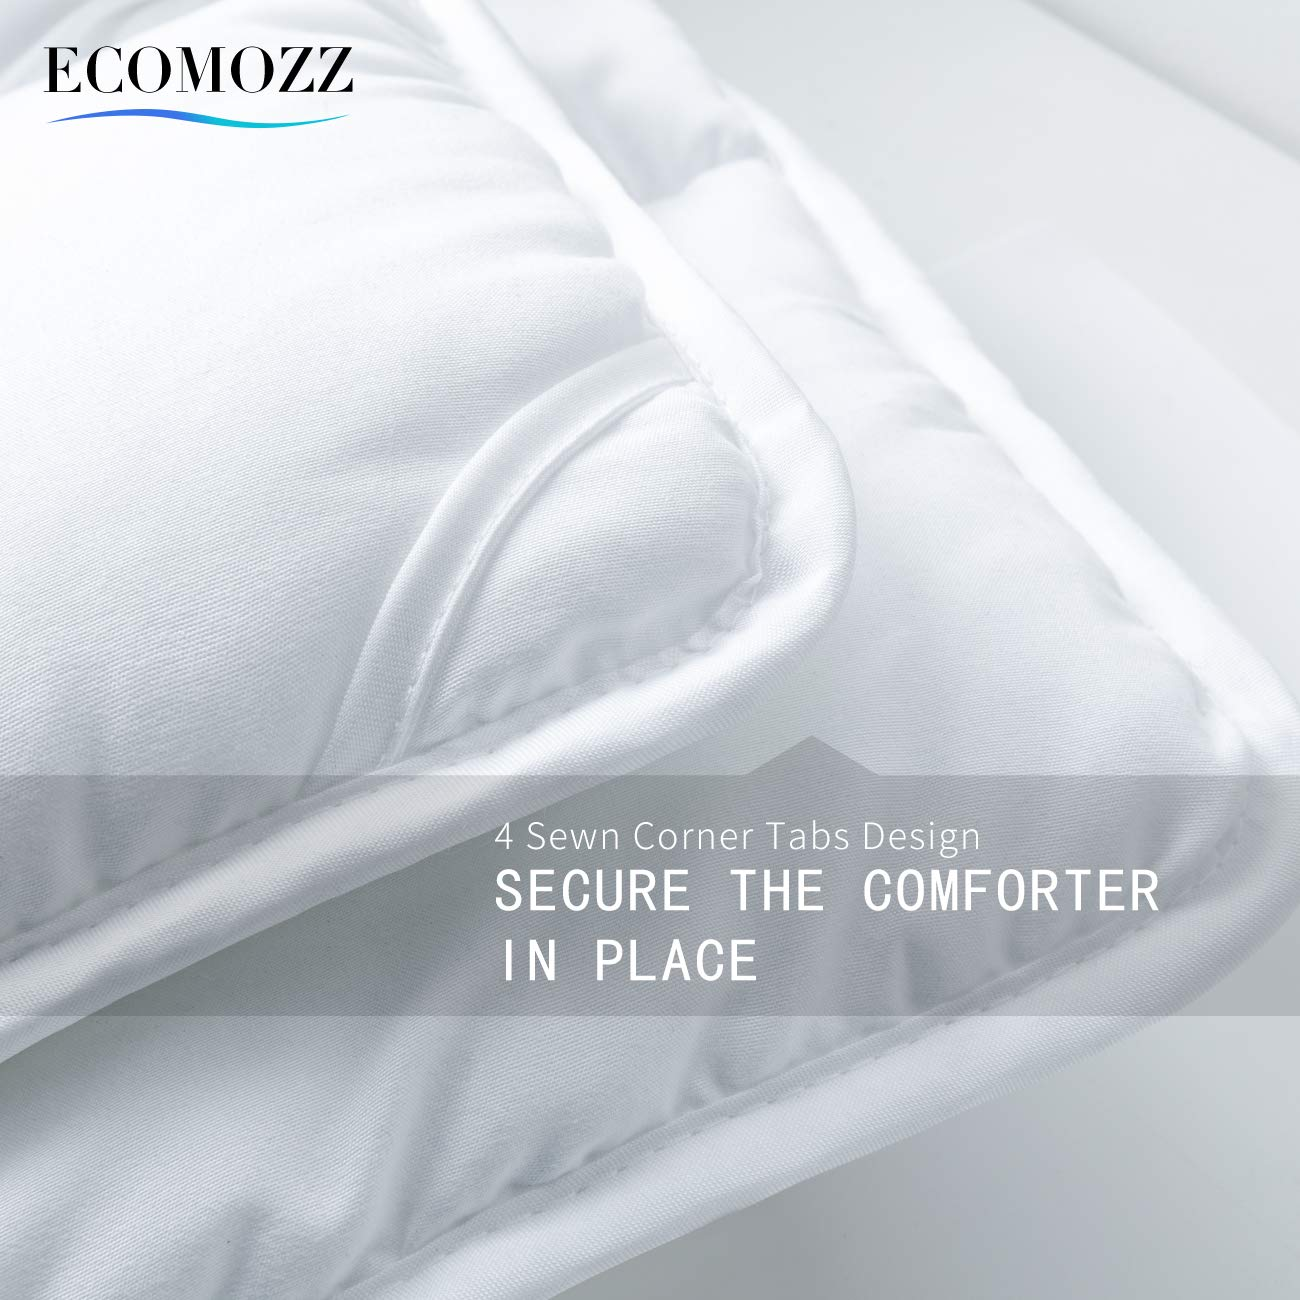 EcoMozz King Comforter with Corner Tabs - All Season Down Alternative Comforter - Soft Warm Quilted Duvet Insert - Hypoallergenic Fluffy Hotel Collection - White by EcoMozz (Image #5)